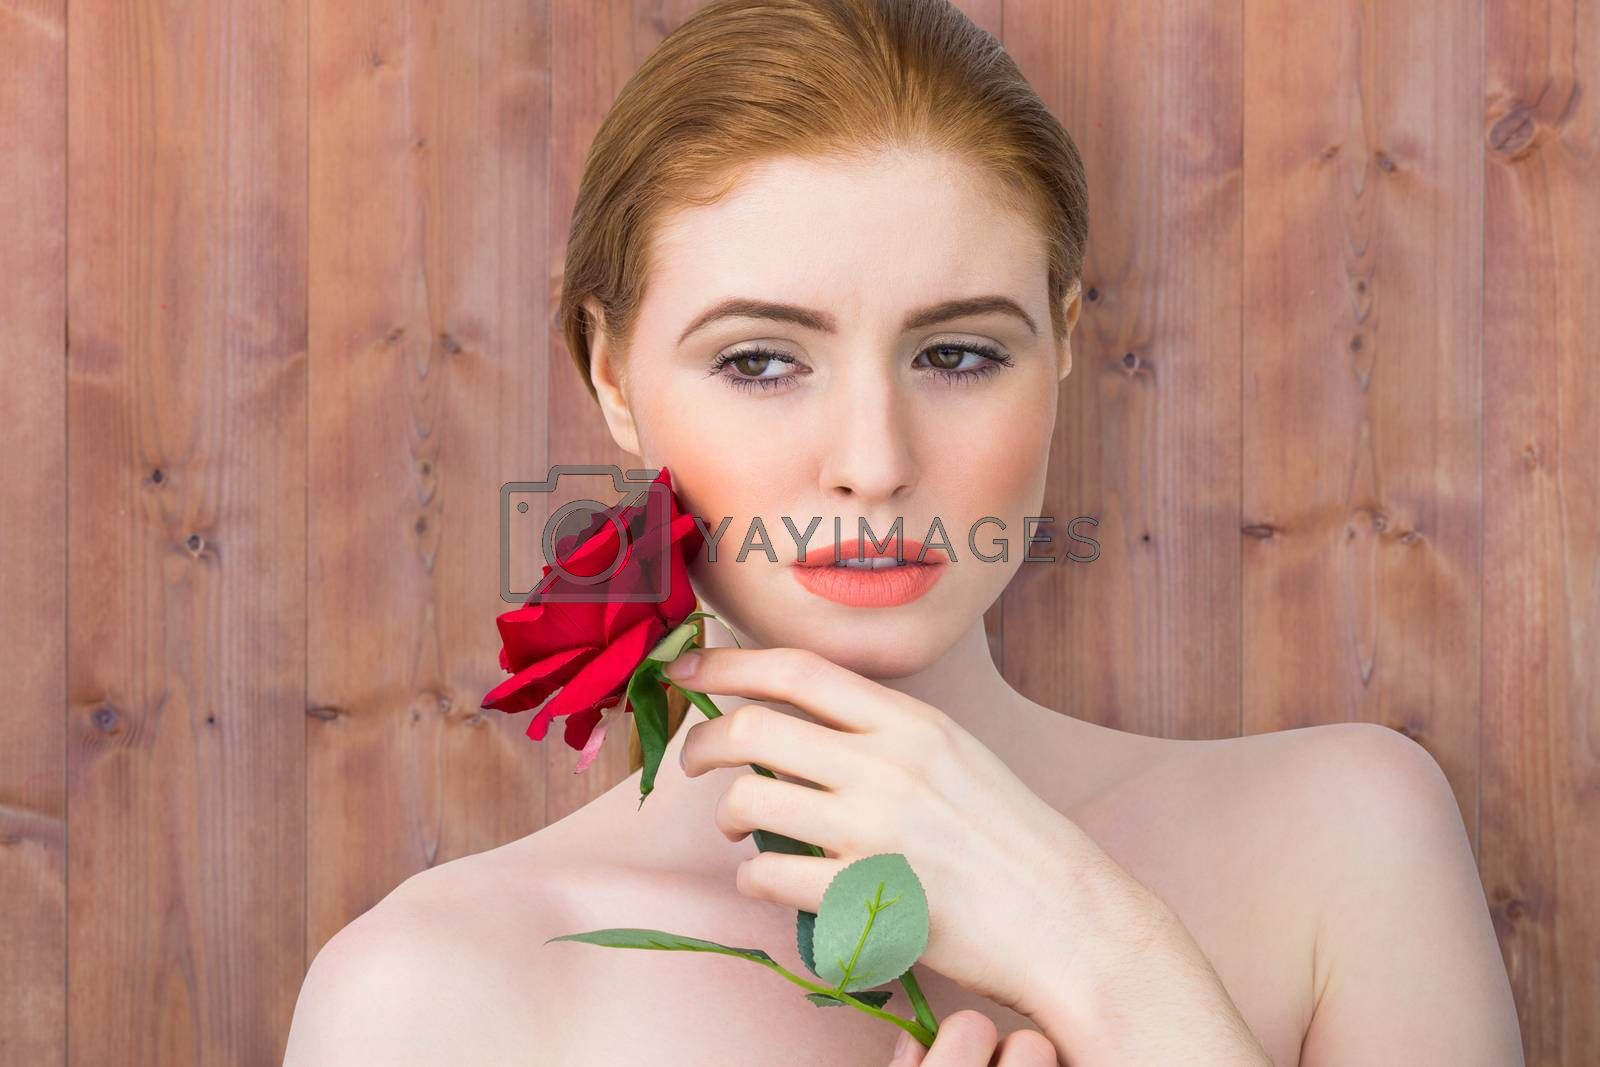 Beautiful redhead posing with red rose against wooden planks